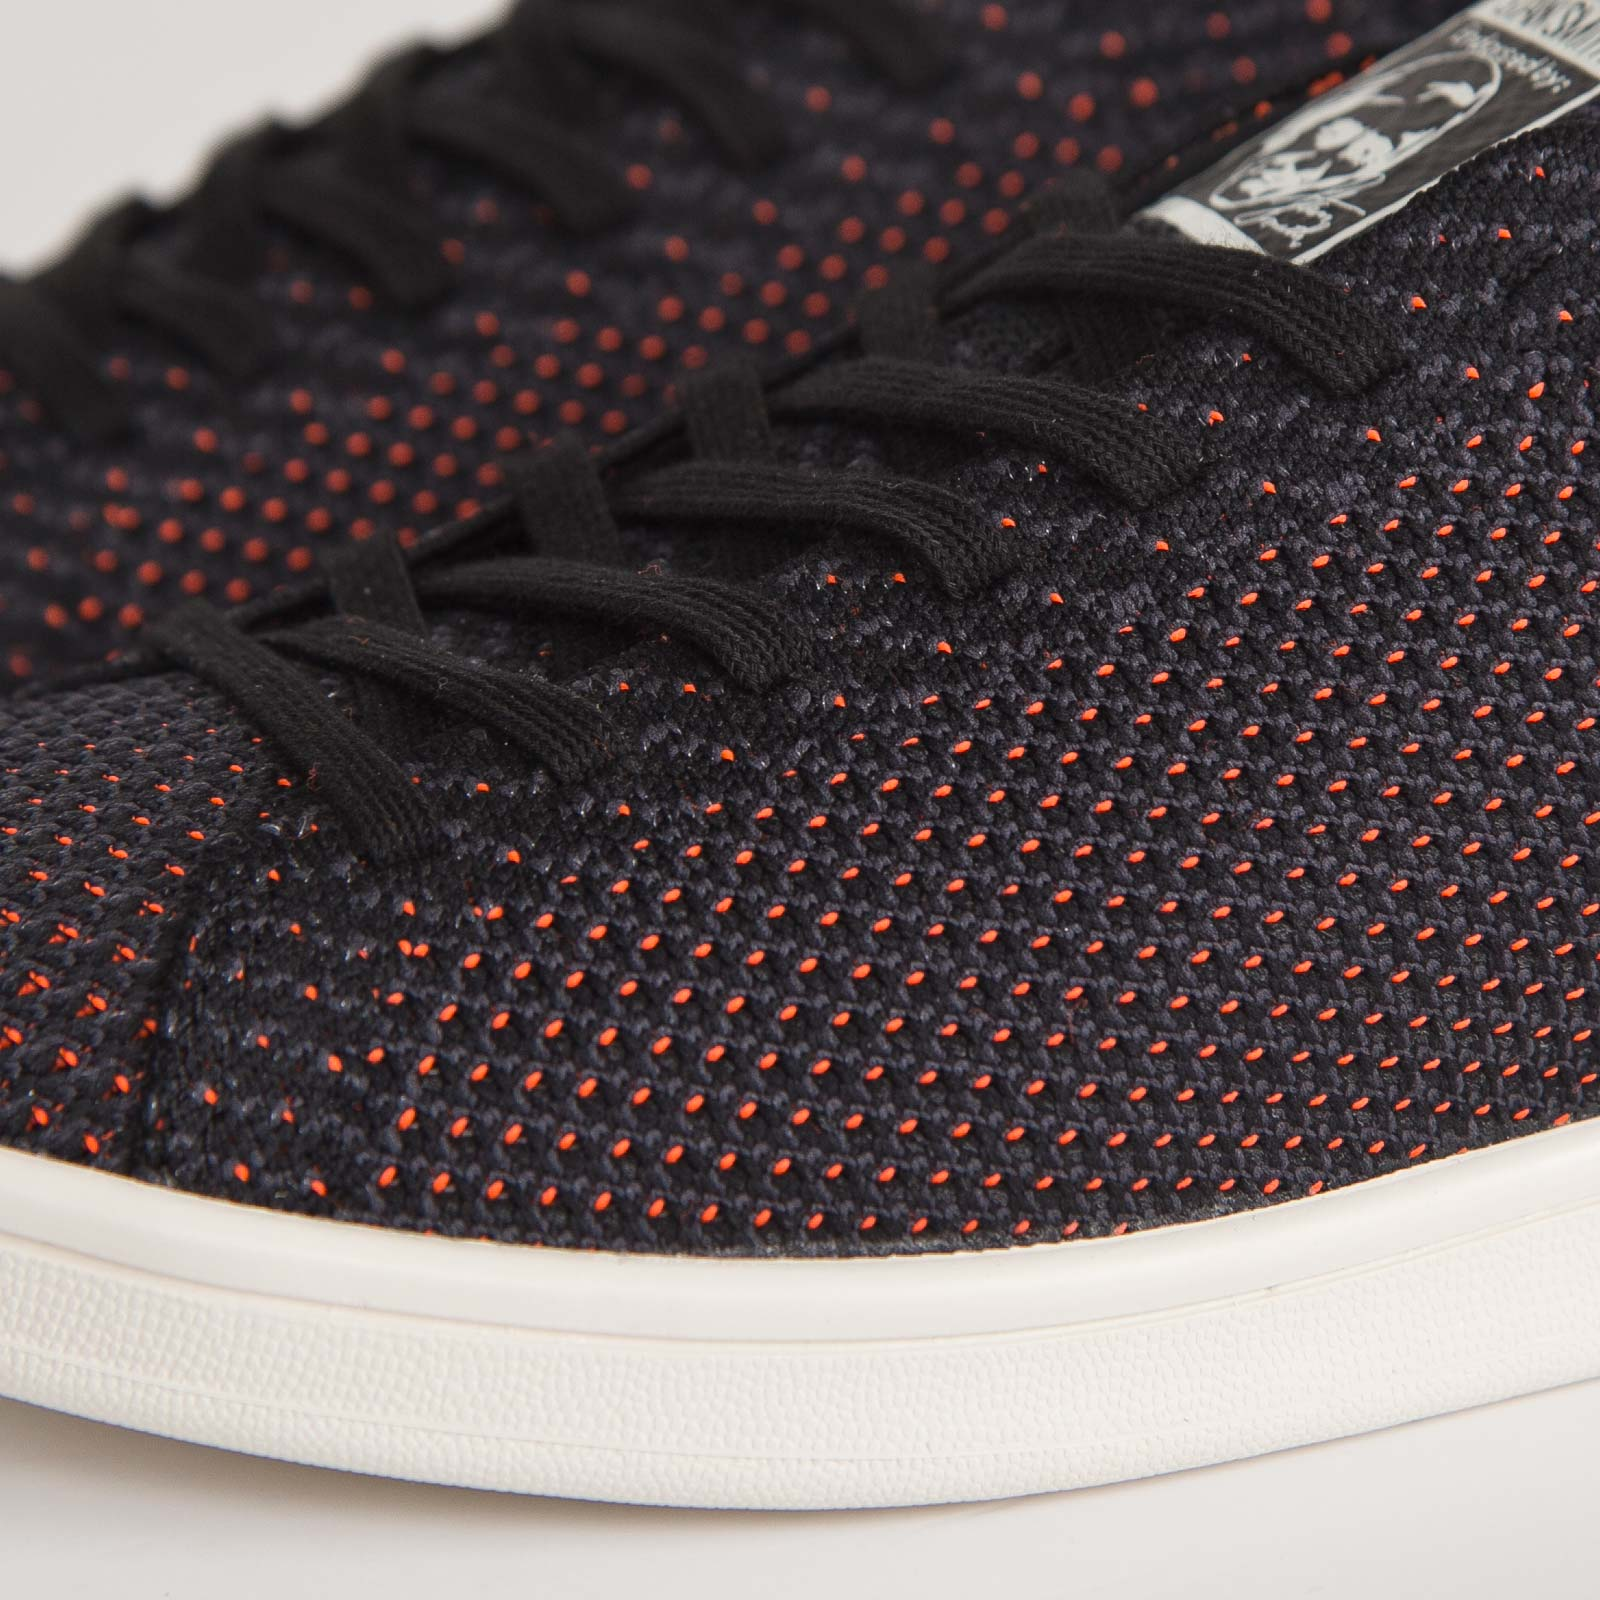 adidas Originals Stan Smith Prime Knit Trainers S82633 in